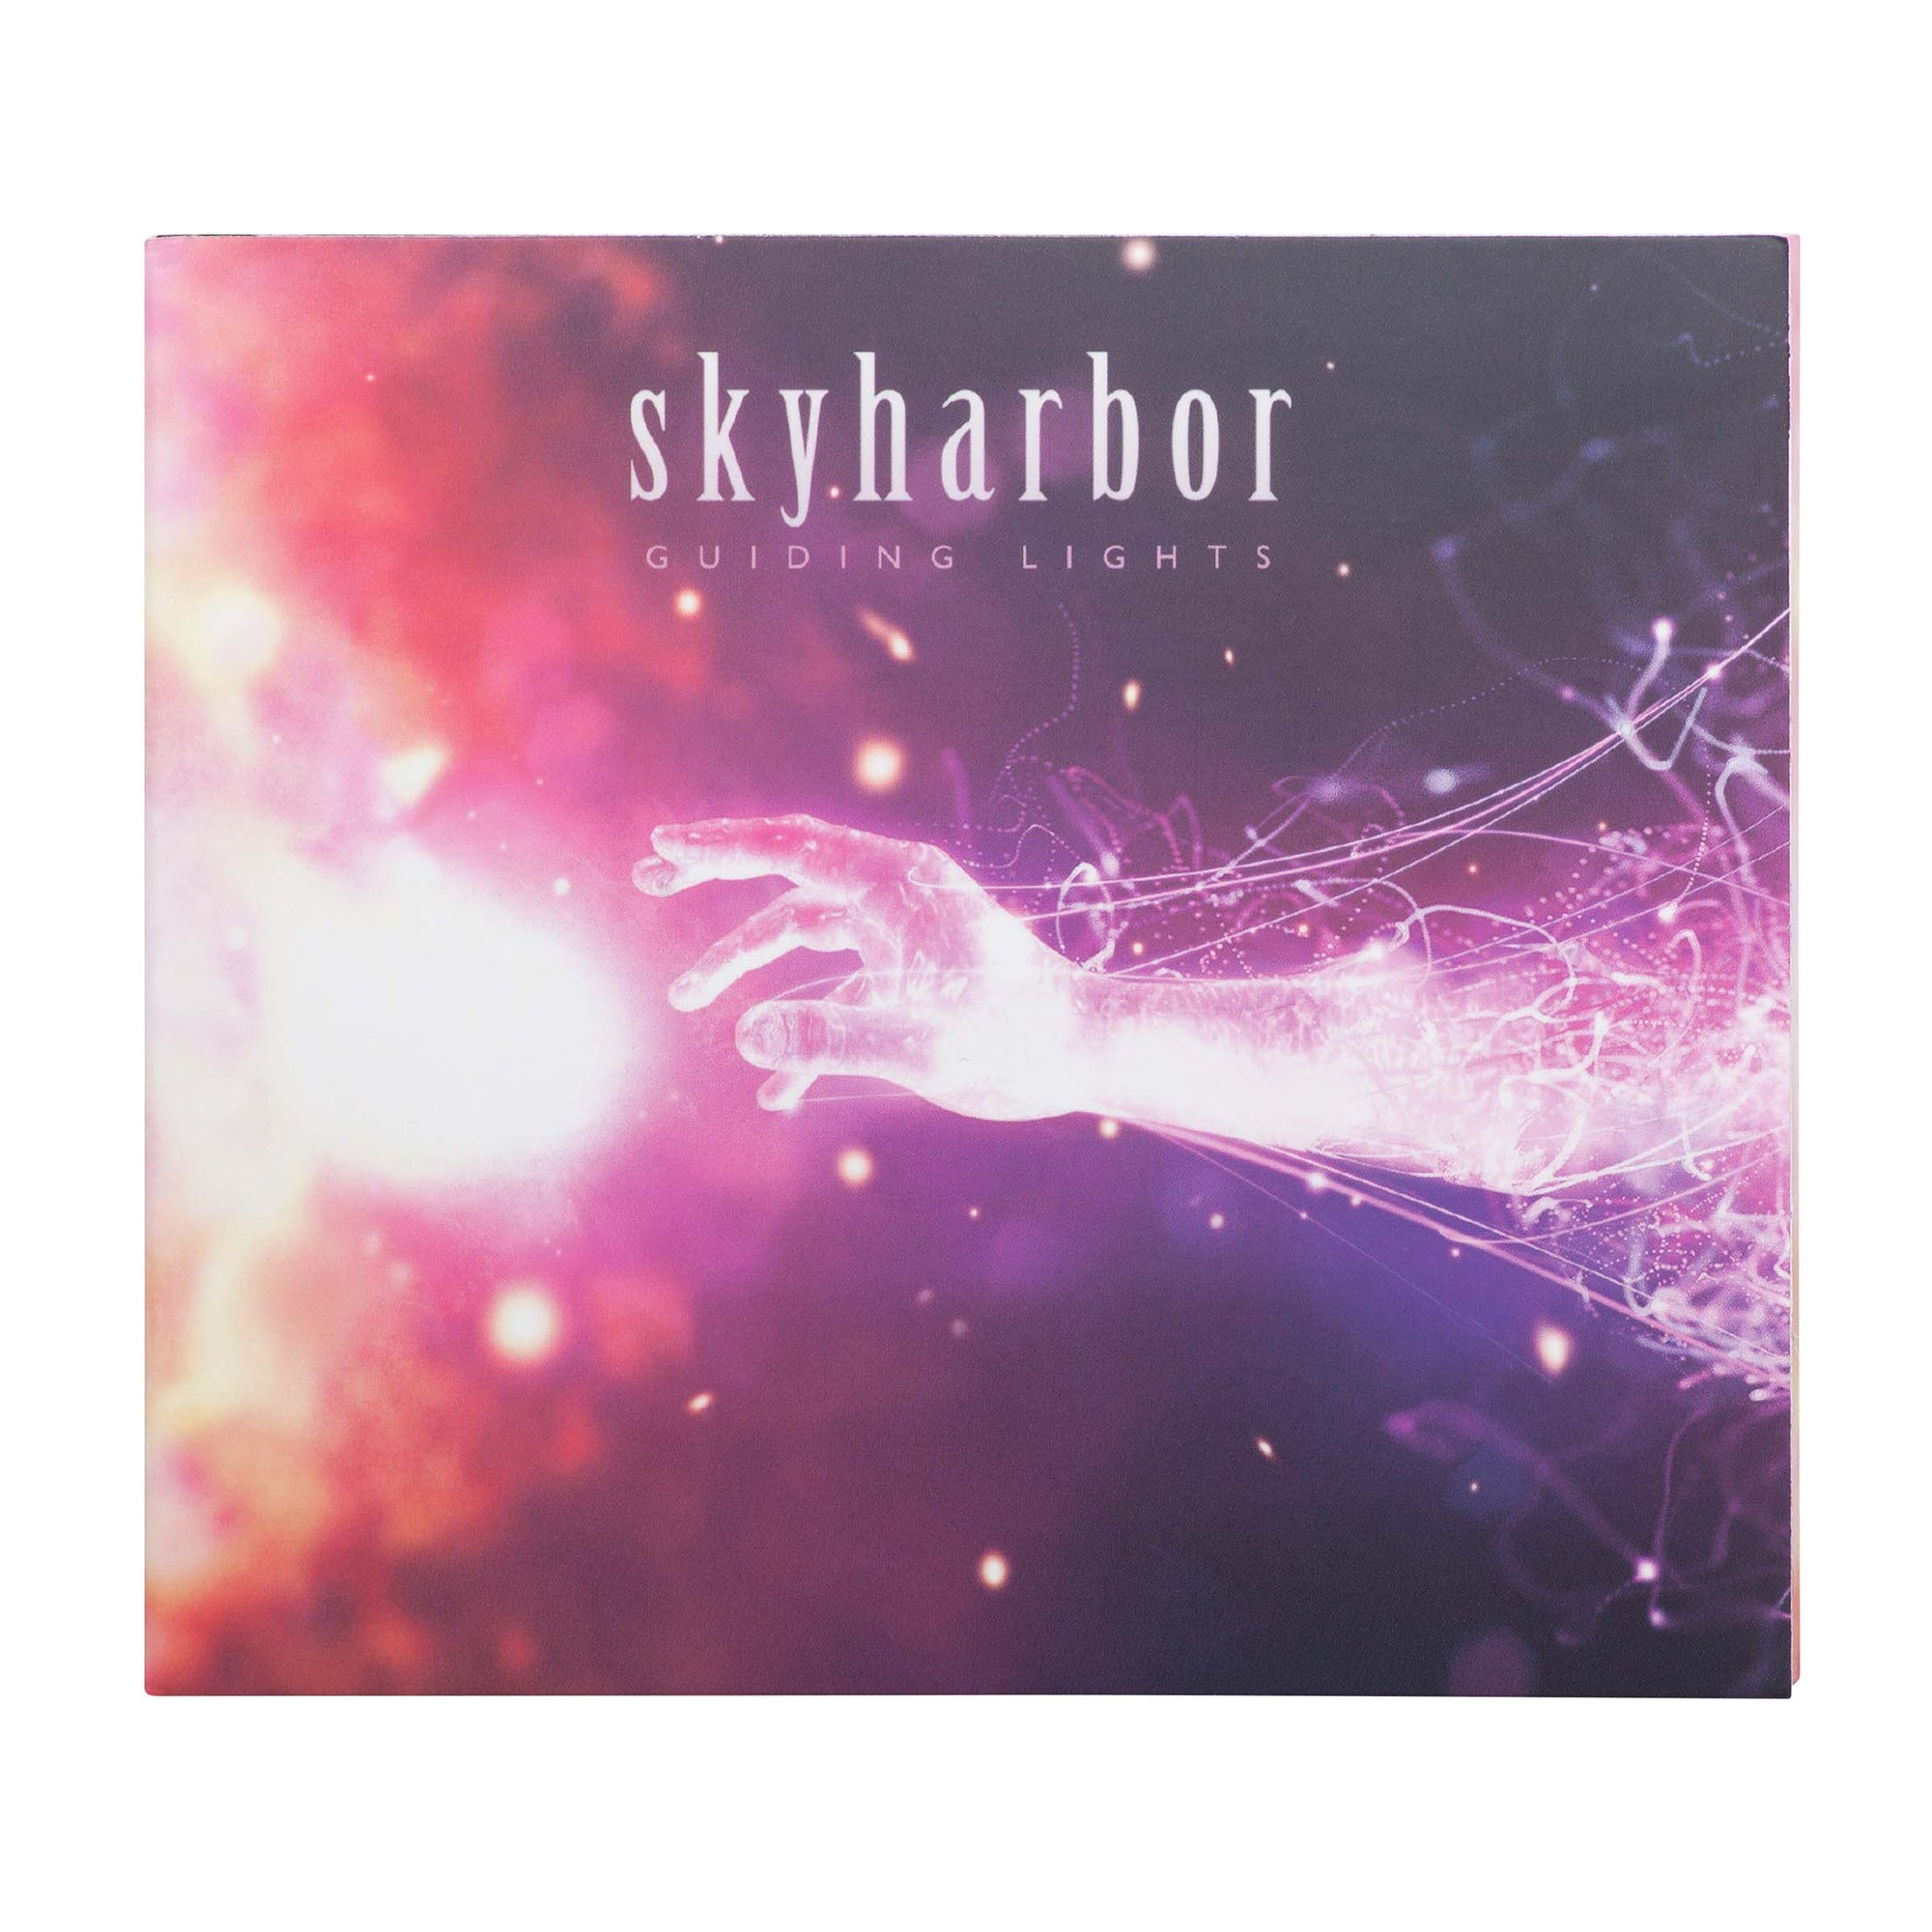 SKYHARBOR // GUIDING LIGHTS - CD - Wild Thing Records